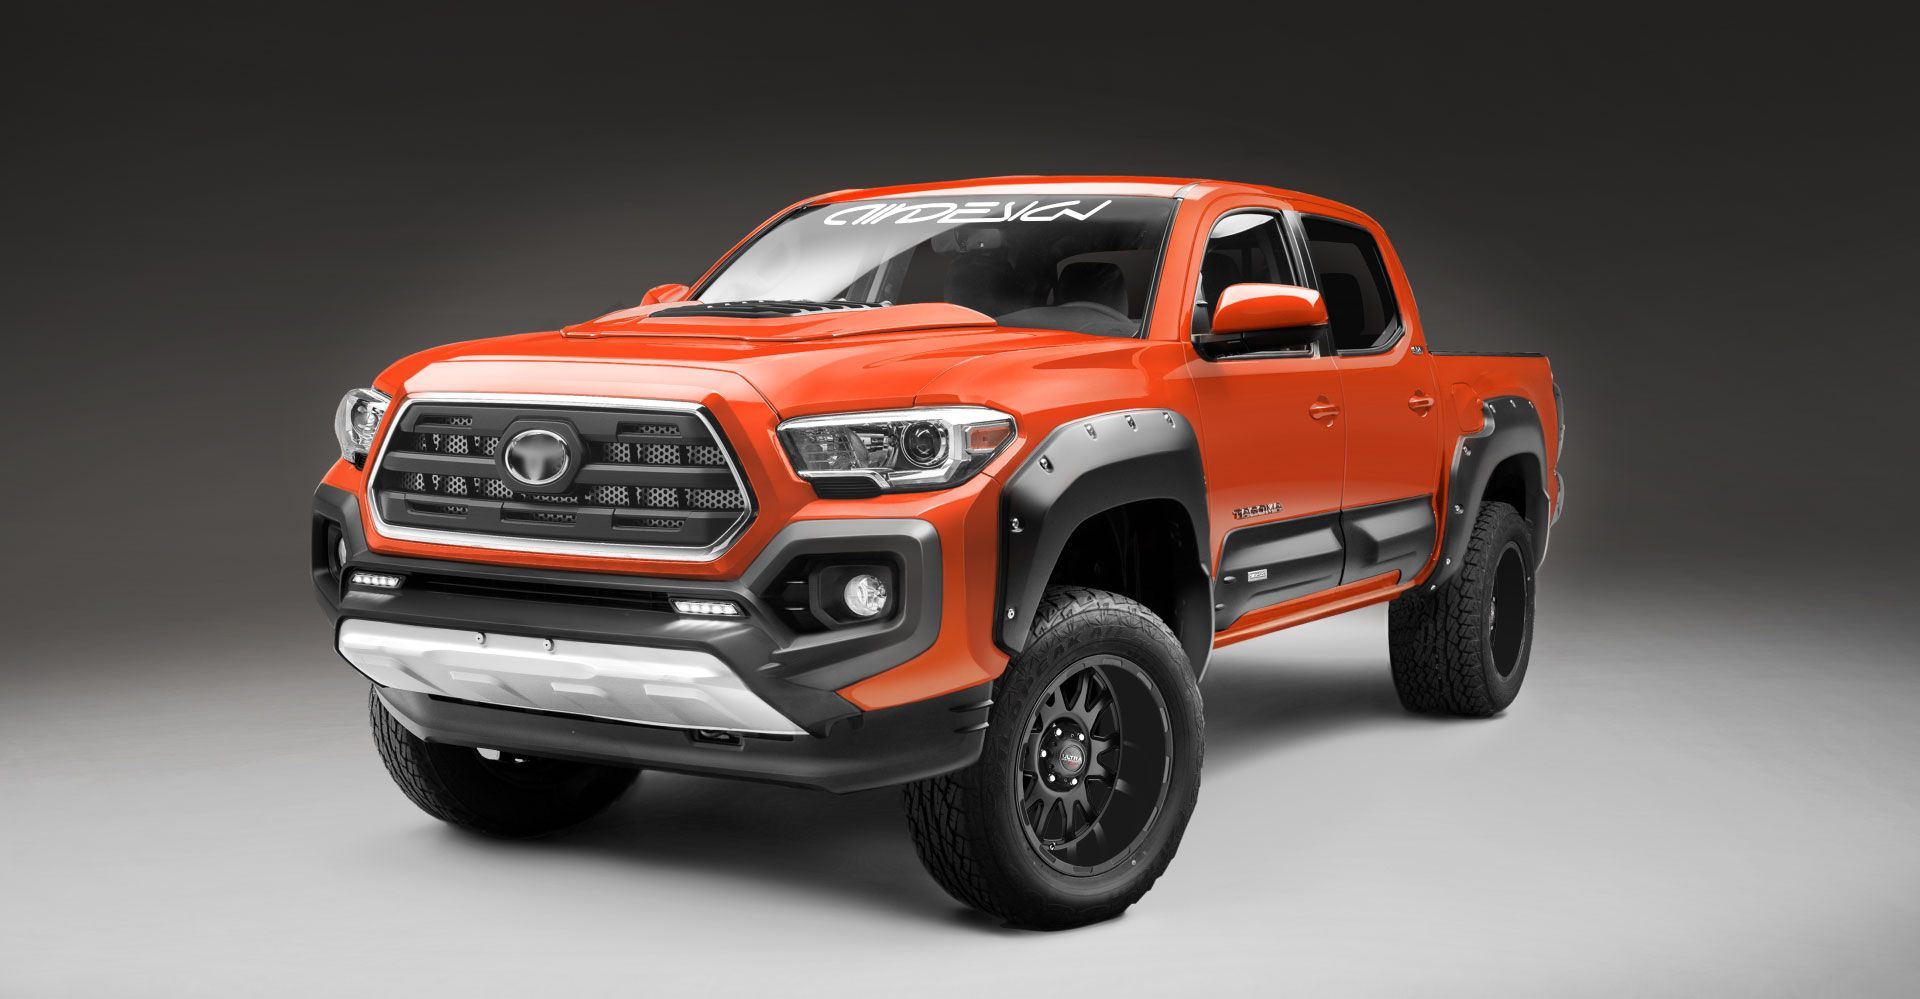 Toyota Tacoma Air Design Usa The Ultimate Accessories Collection For Off Road And Street Toyota Tacoma Toyota Tacoma Accessories Tacoma Accessories